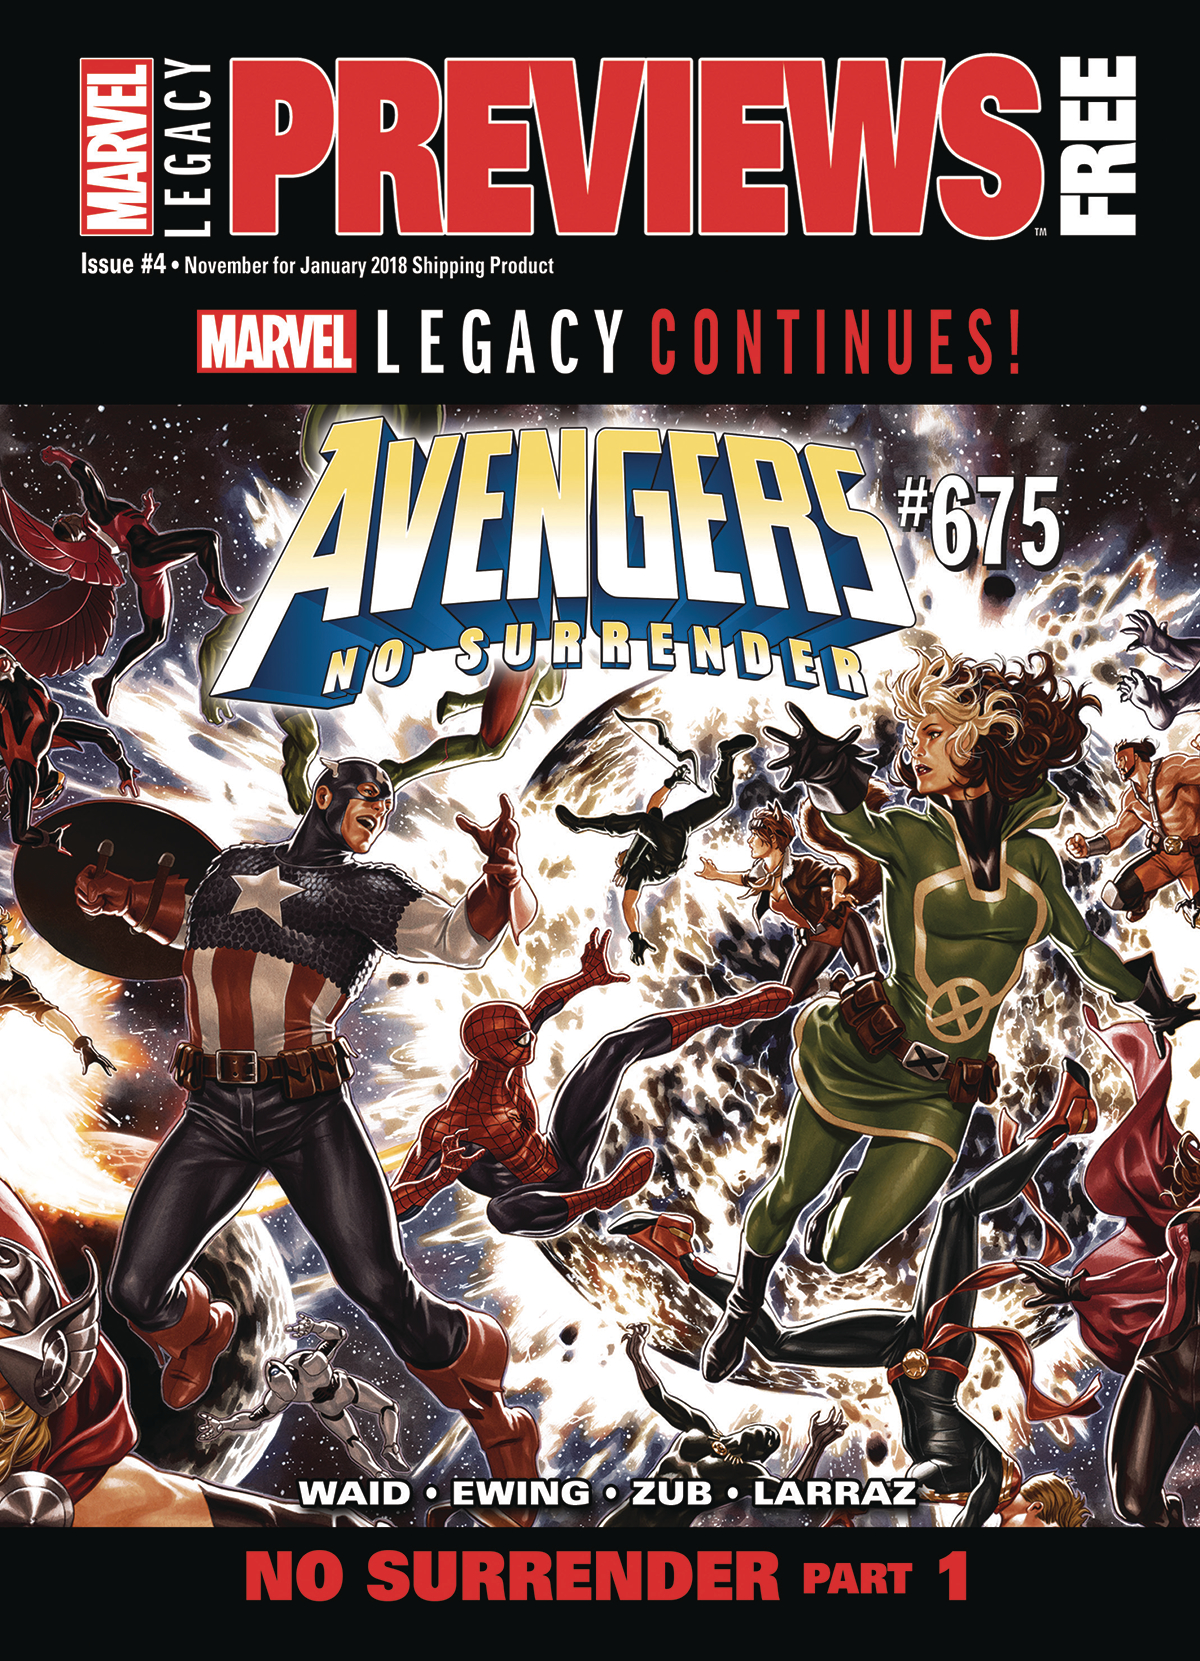 MARVEL PREVIEWS VOL 04 #4 NOVEMBER 2017 EXTRAS